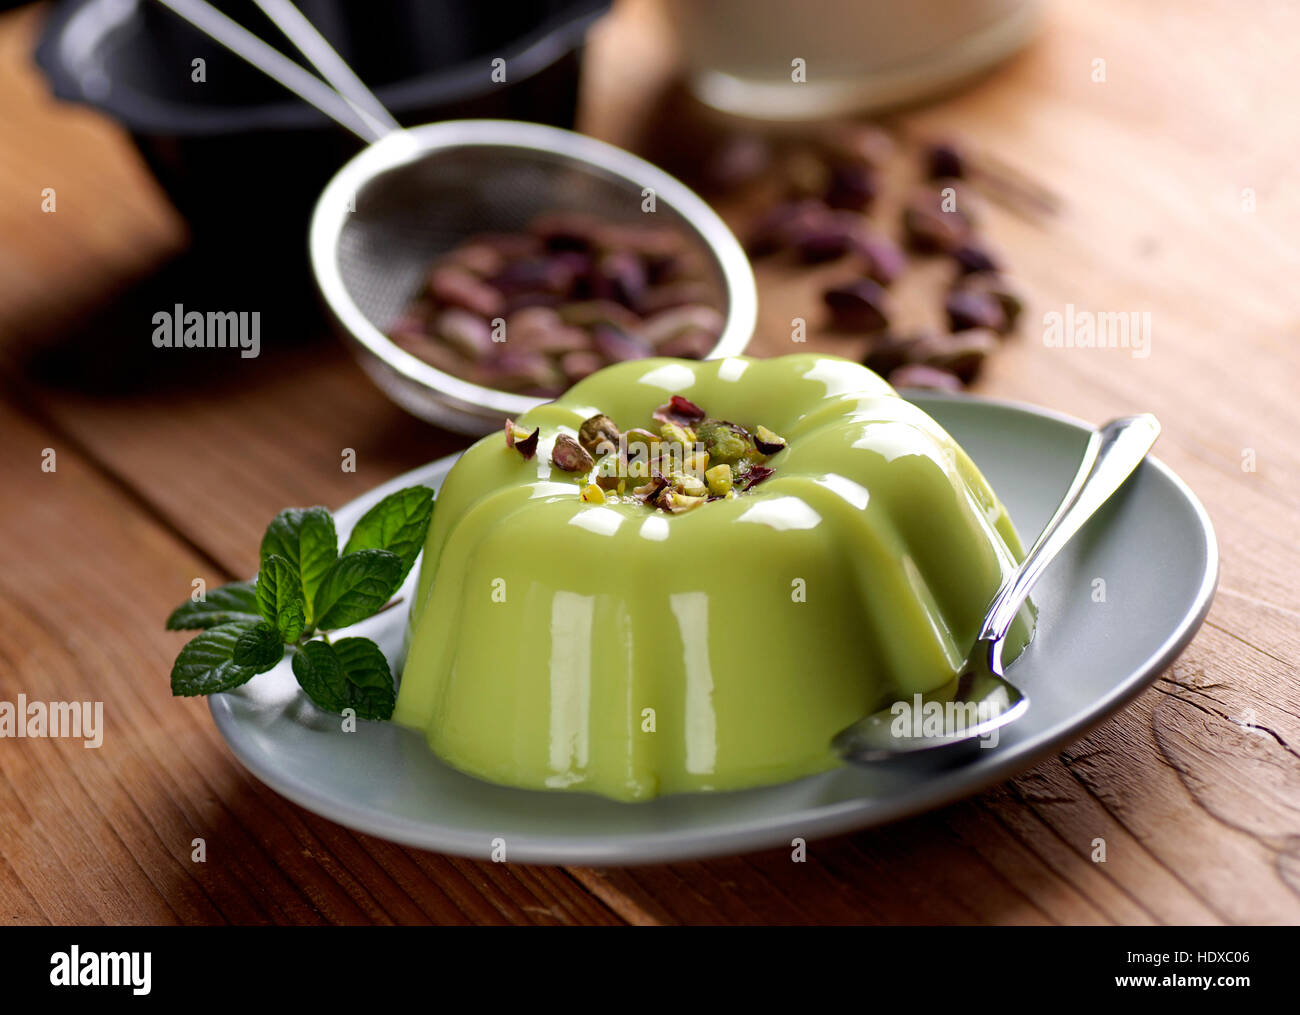 pistachio pudding with ingredients around - Stock Image